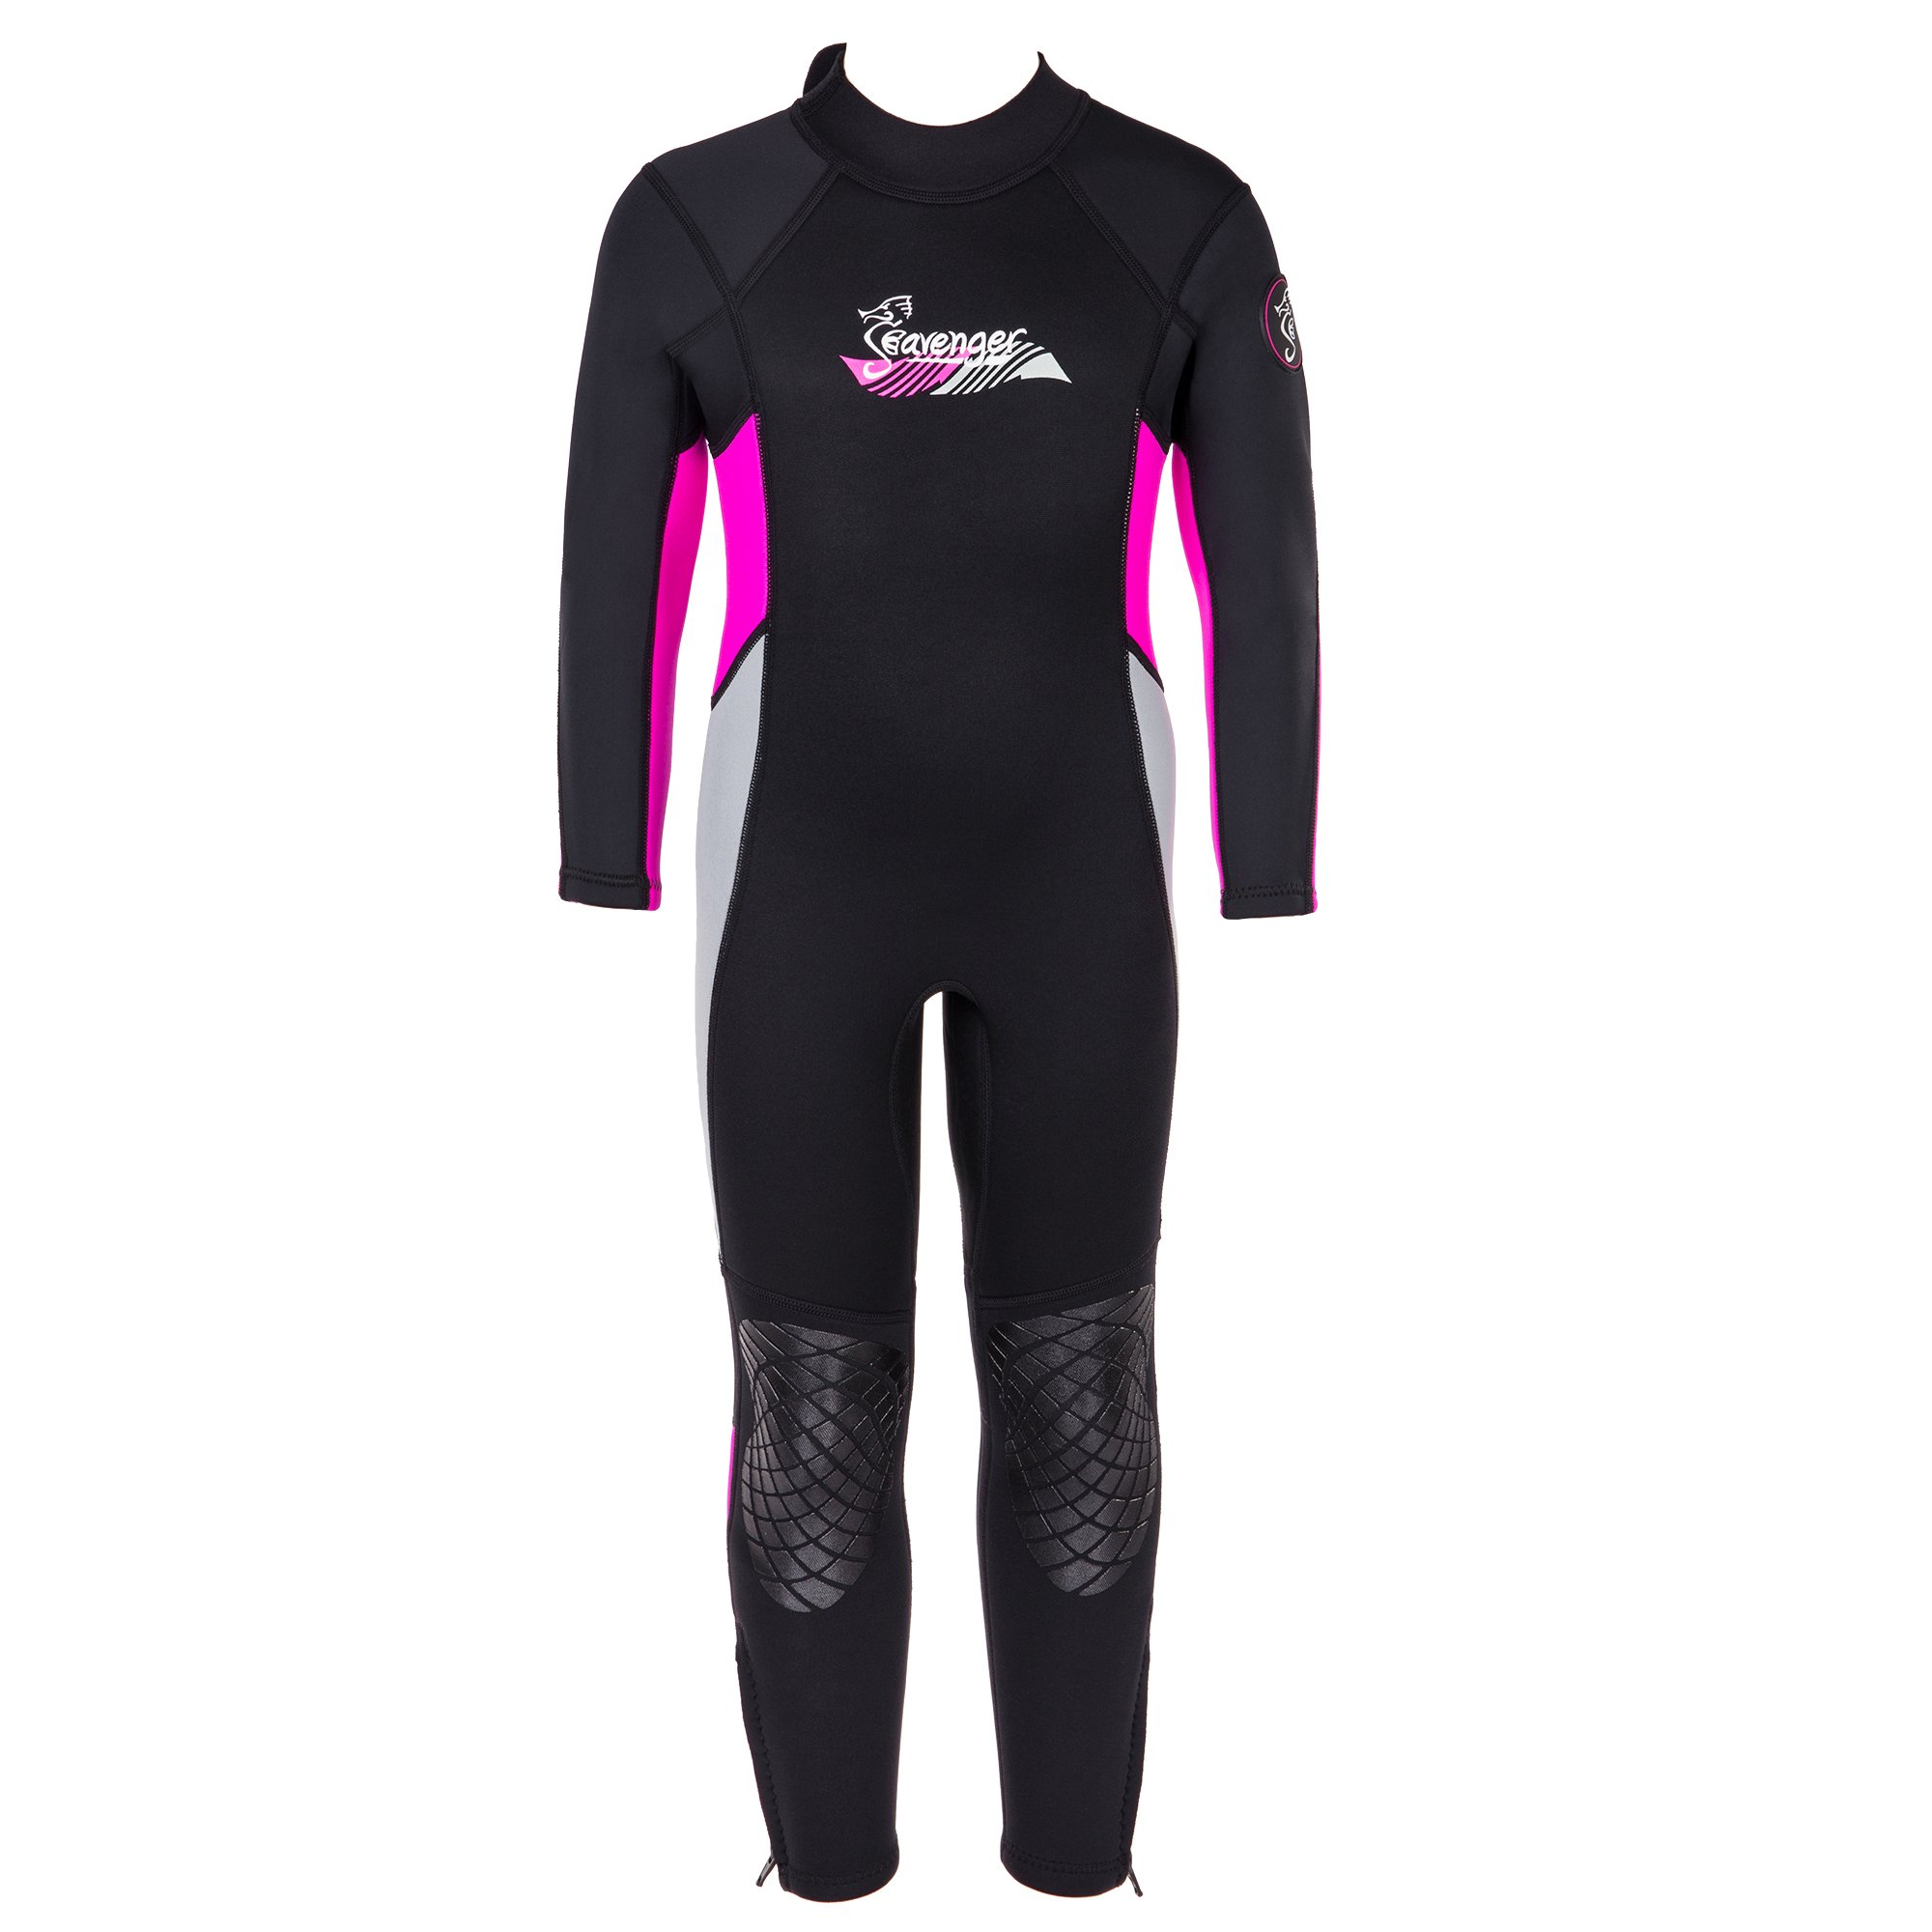 Seavenger Scout 3mm Kids Wetsuit | Full Body Neoprene Suit for Snorkeling, Swimming, Diving (Coral Pink, 6) by Seavenger (Image #1)